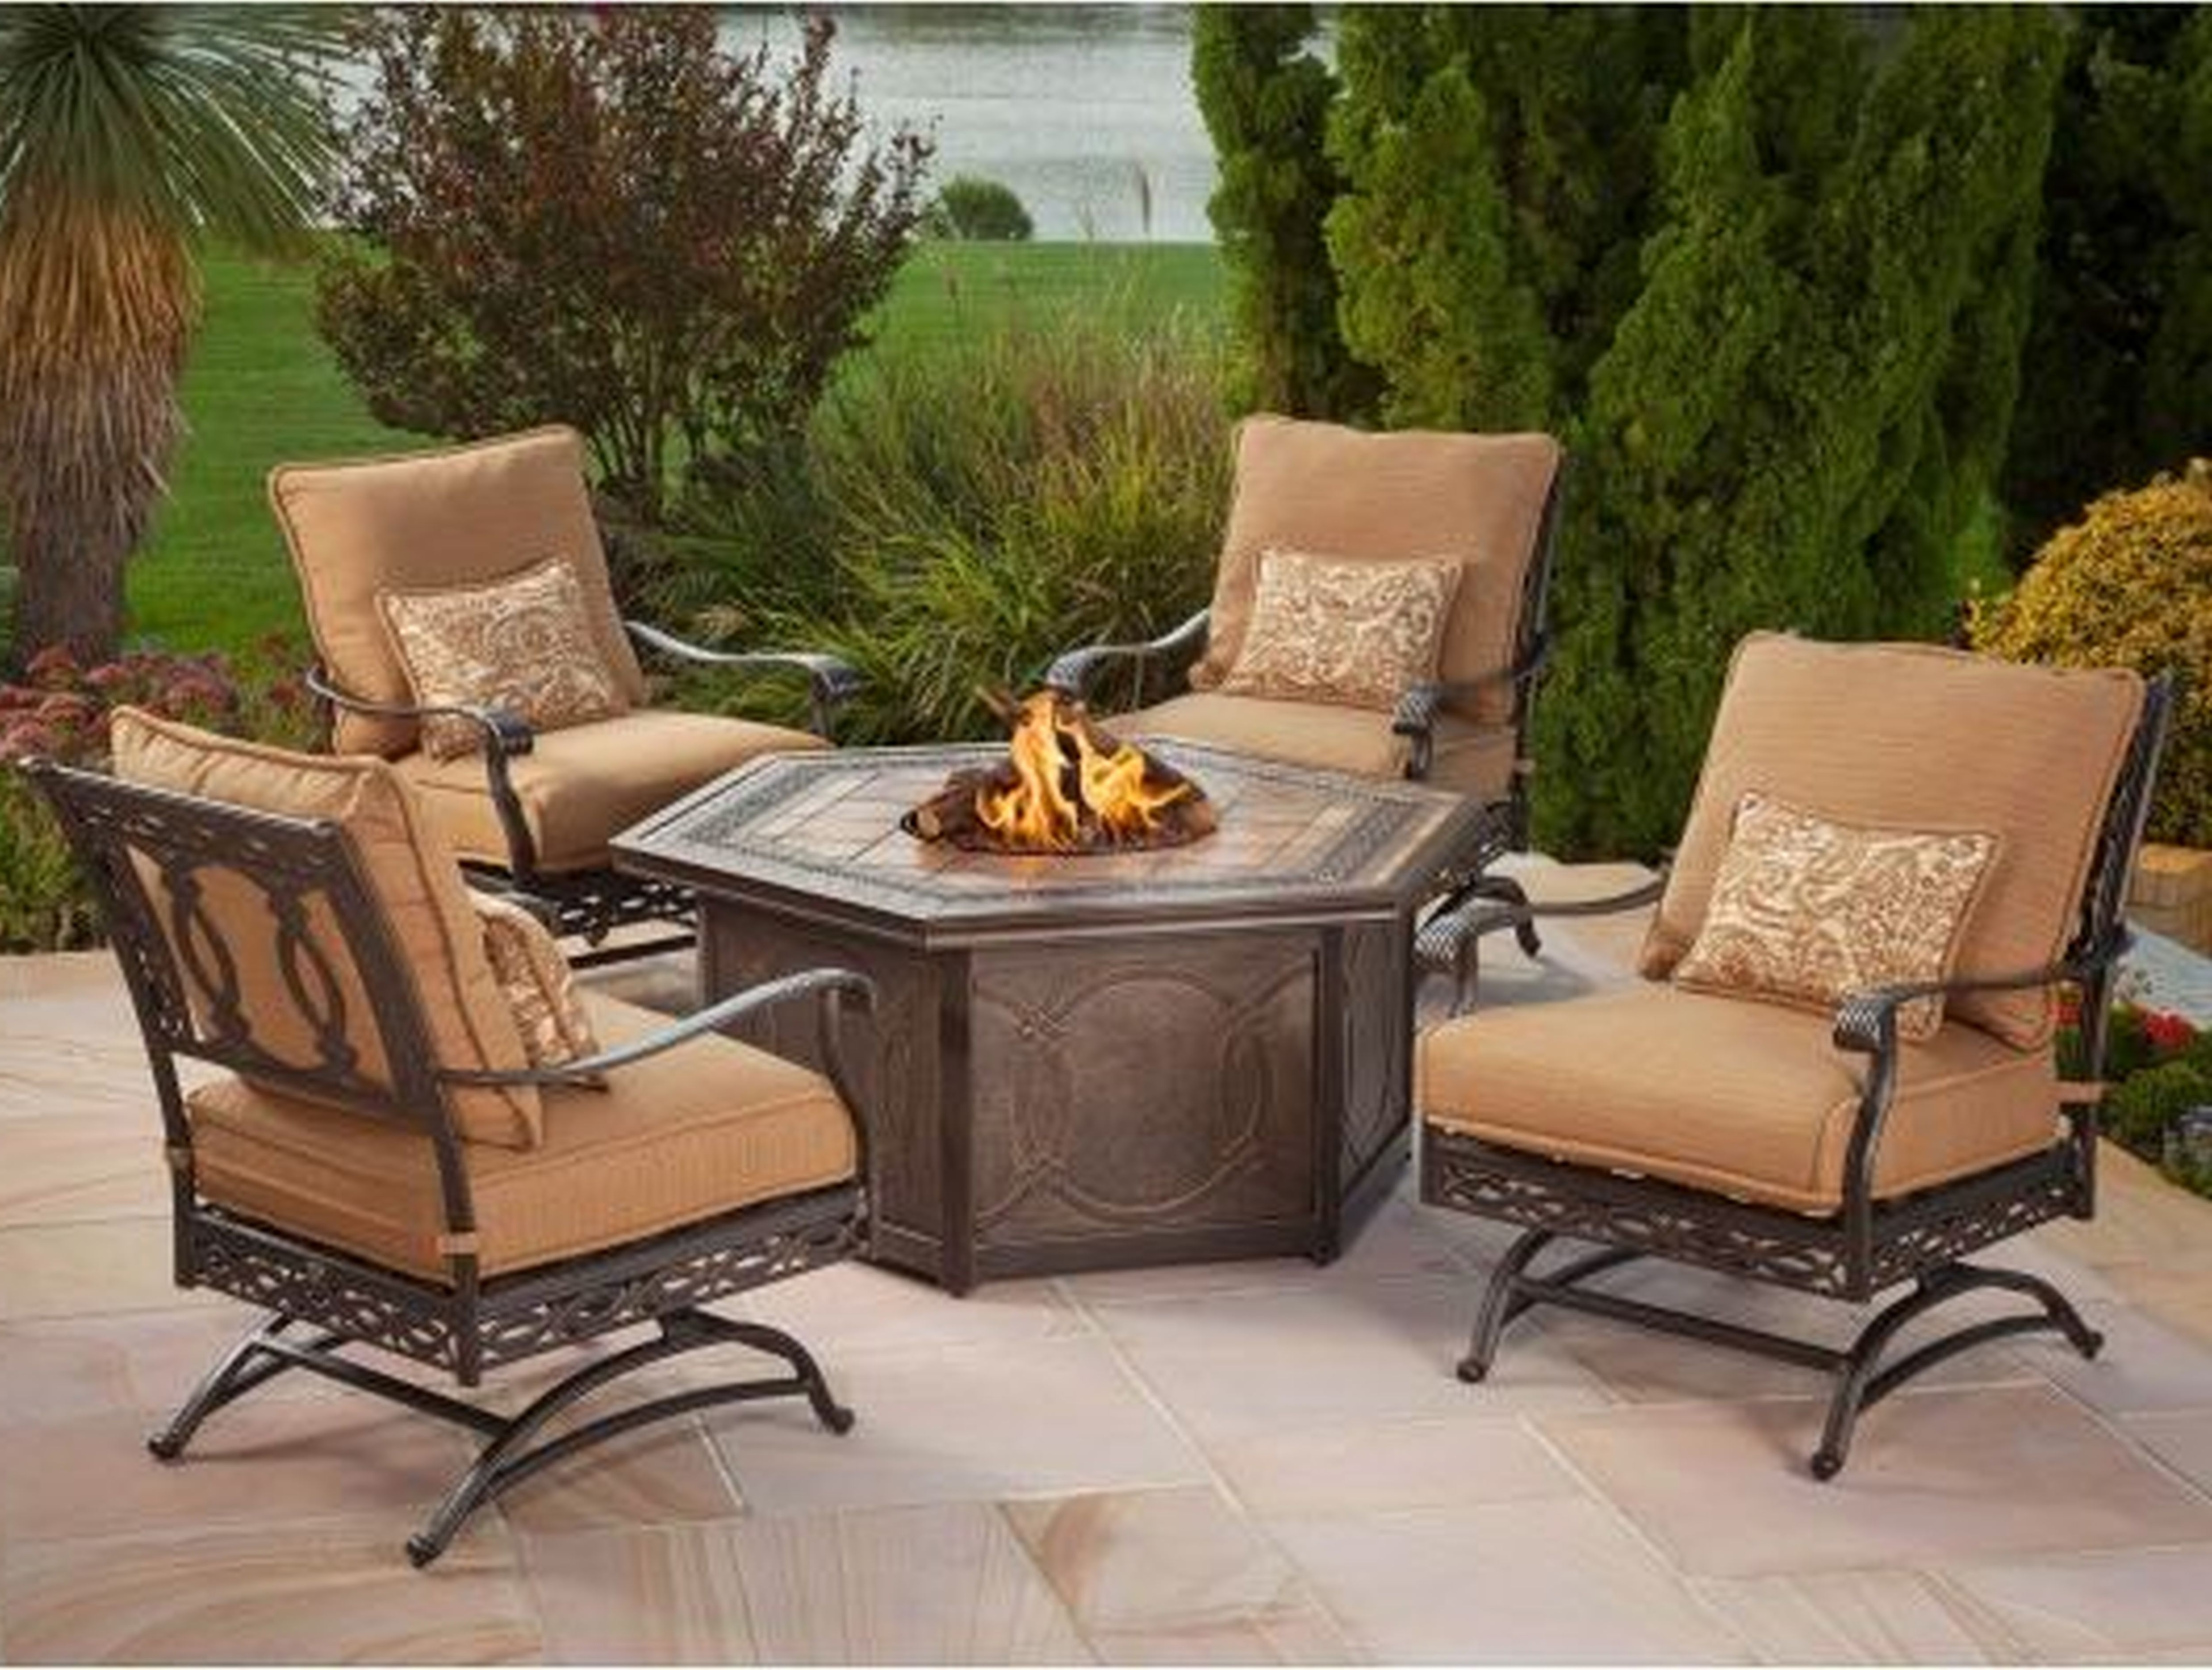 Patio Conversation Sets At Lowes With Most Recent Fortune Lowes Outdoor Furniture Clearance Patio Home Design (View 9 of 15)